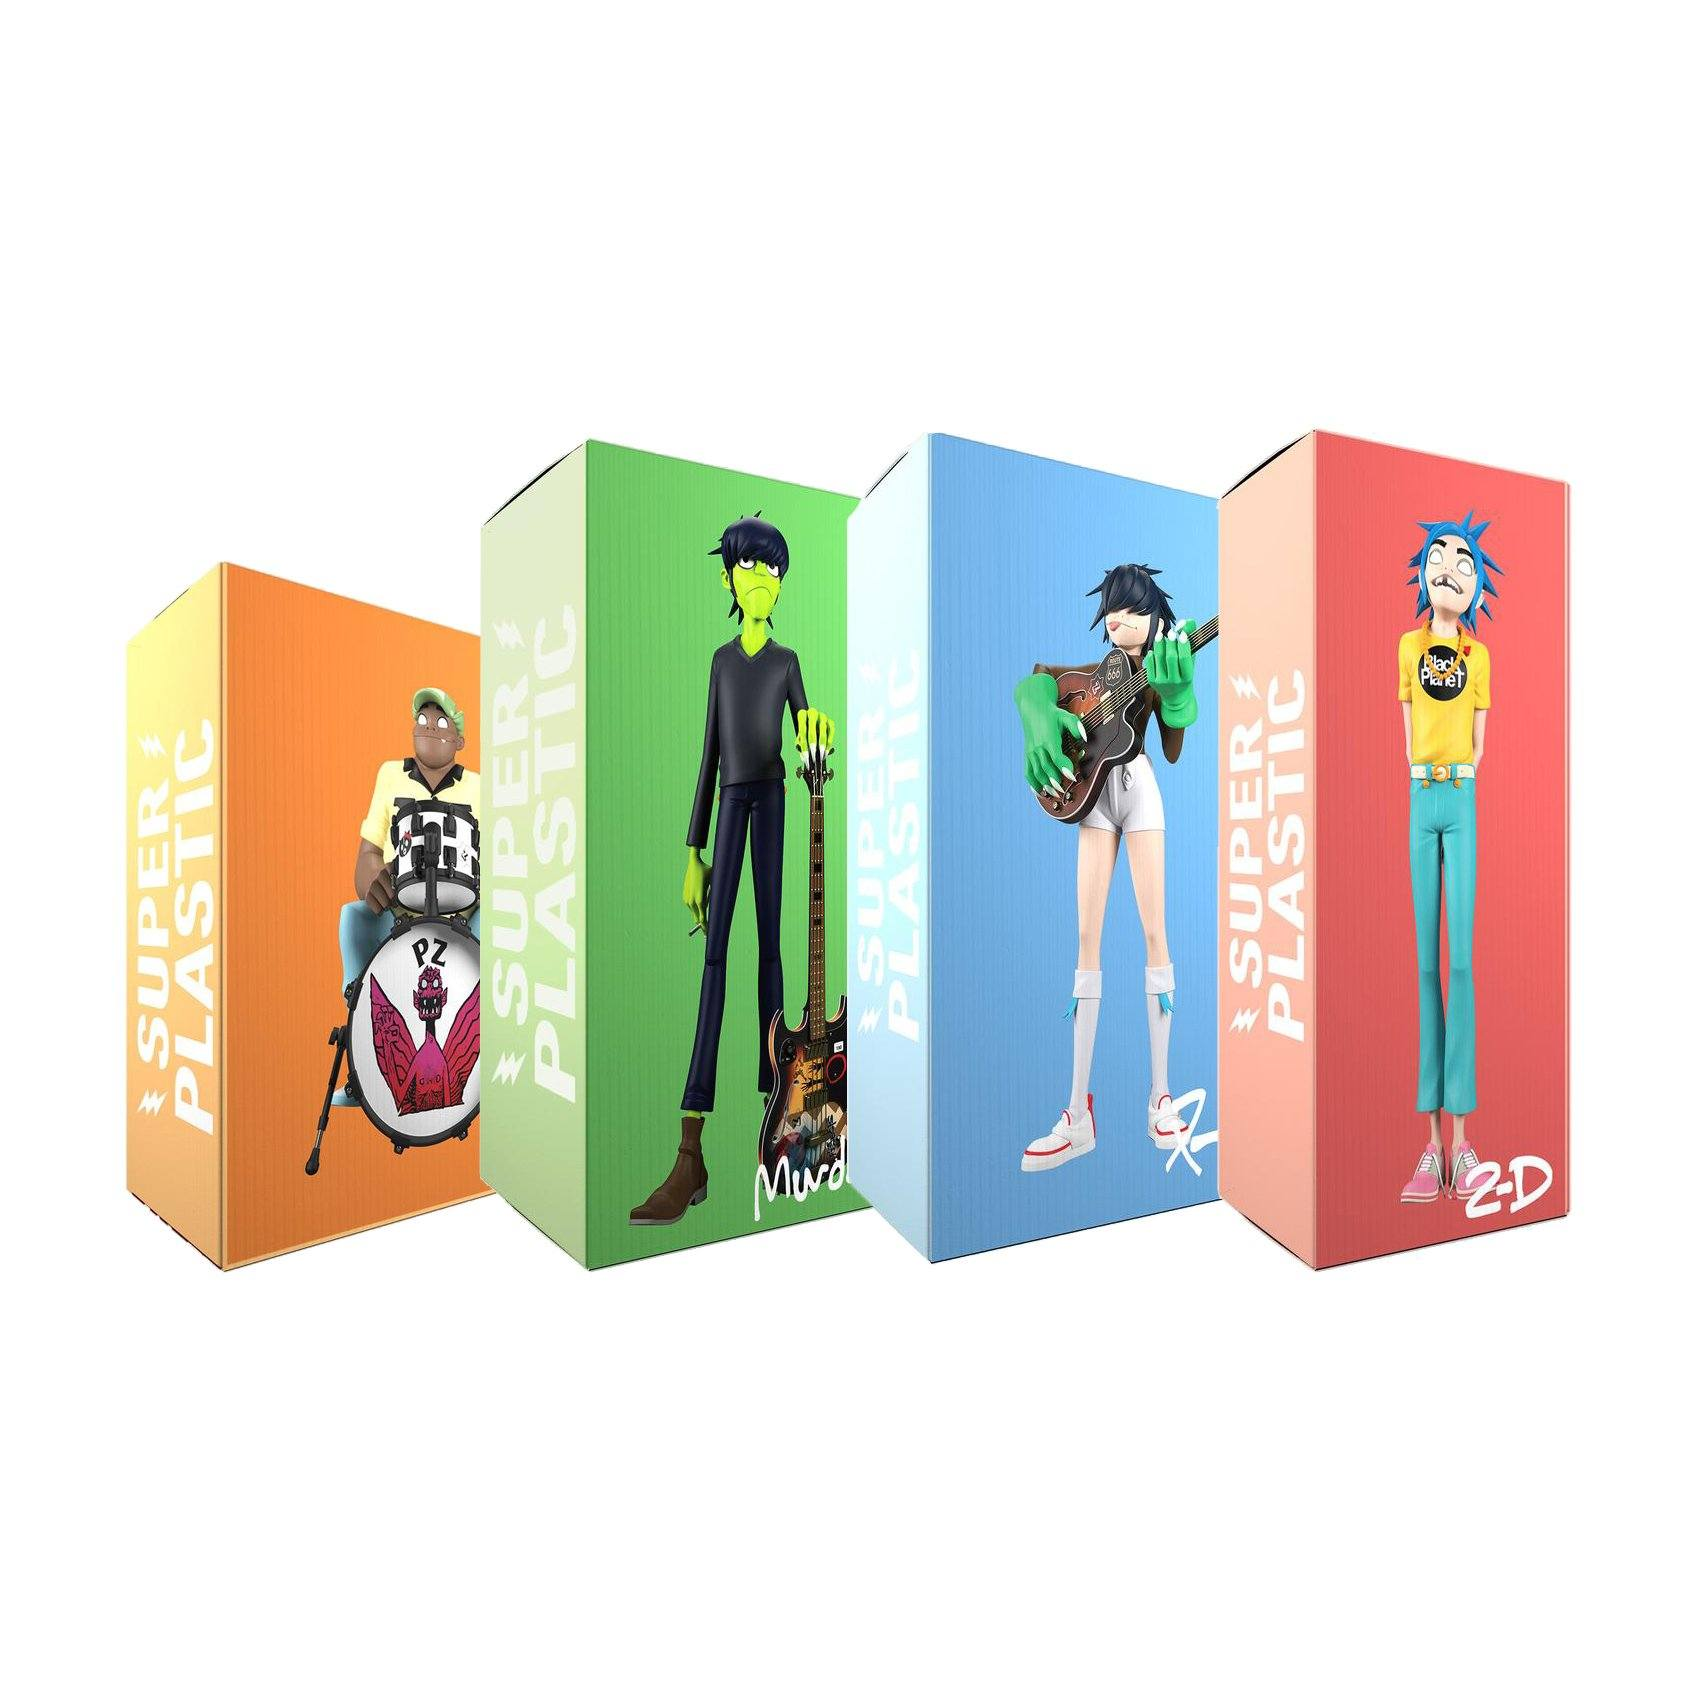 Gorillaz Song Machine Band [FULL SET OF 4 FIGURES] by Superplastic 13-inch Vinyl Figure Superplastic